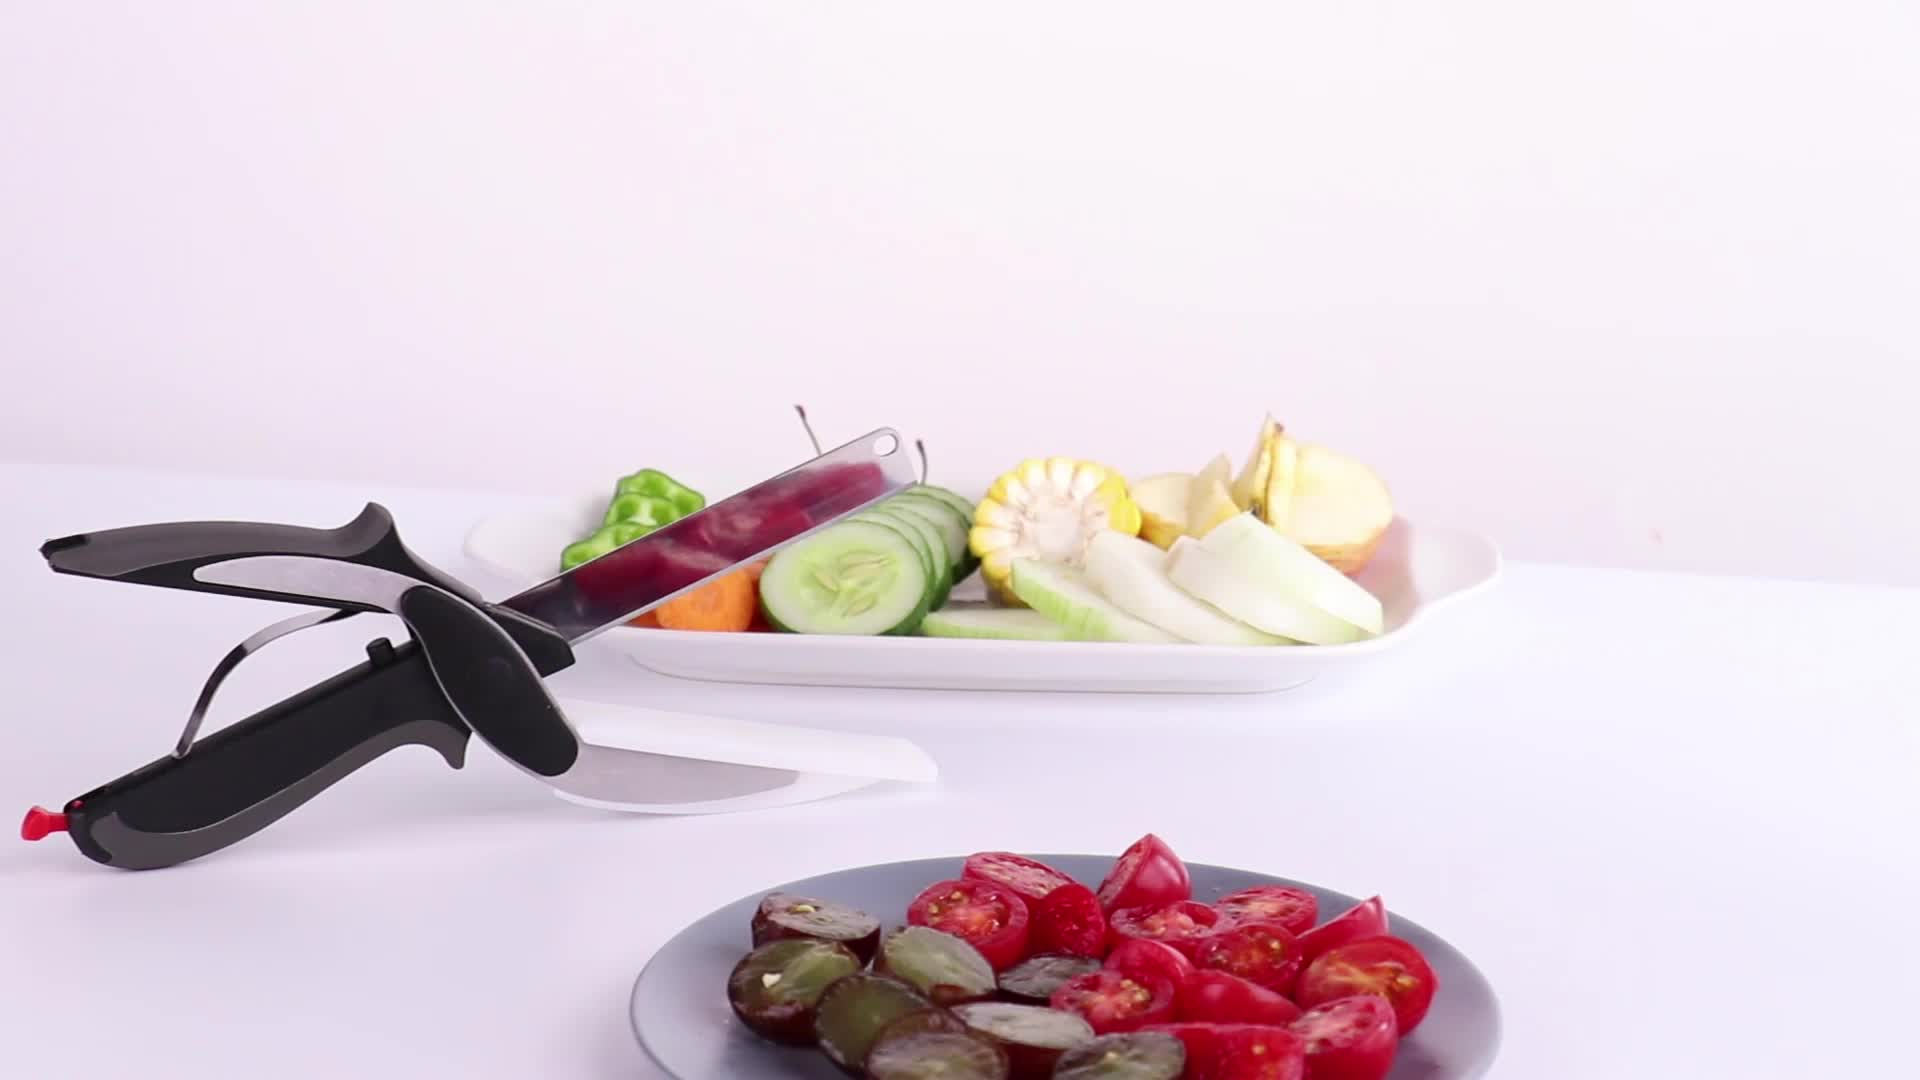 Manual Clever Cutter 2-In-1 Food Chopper  For Home Use